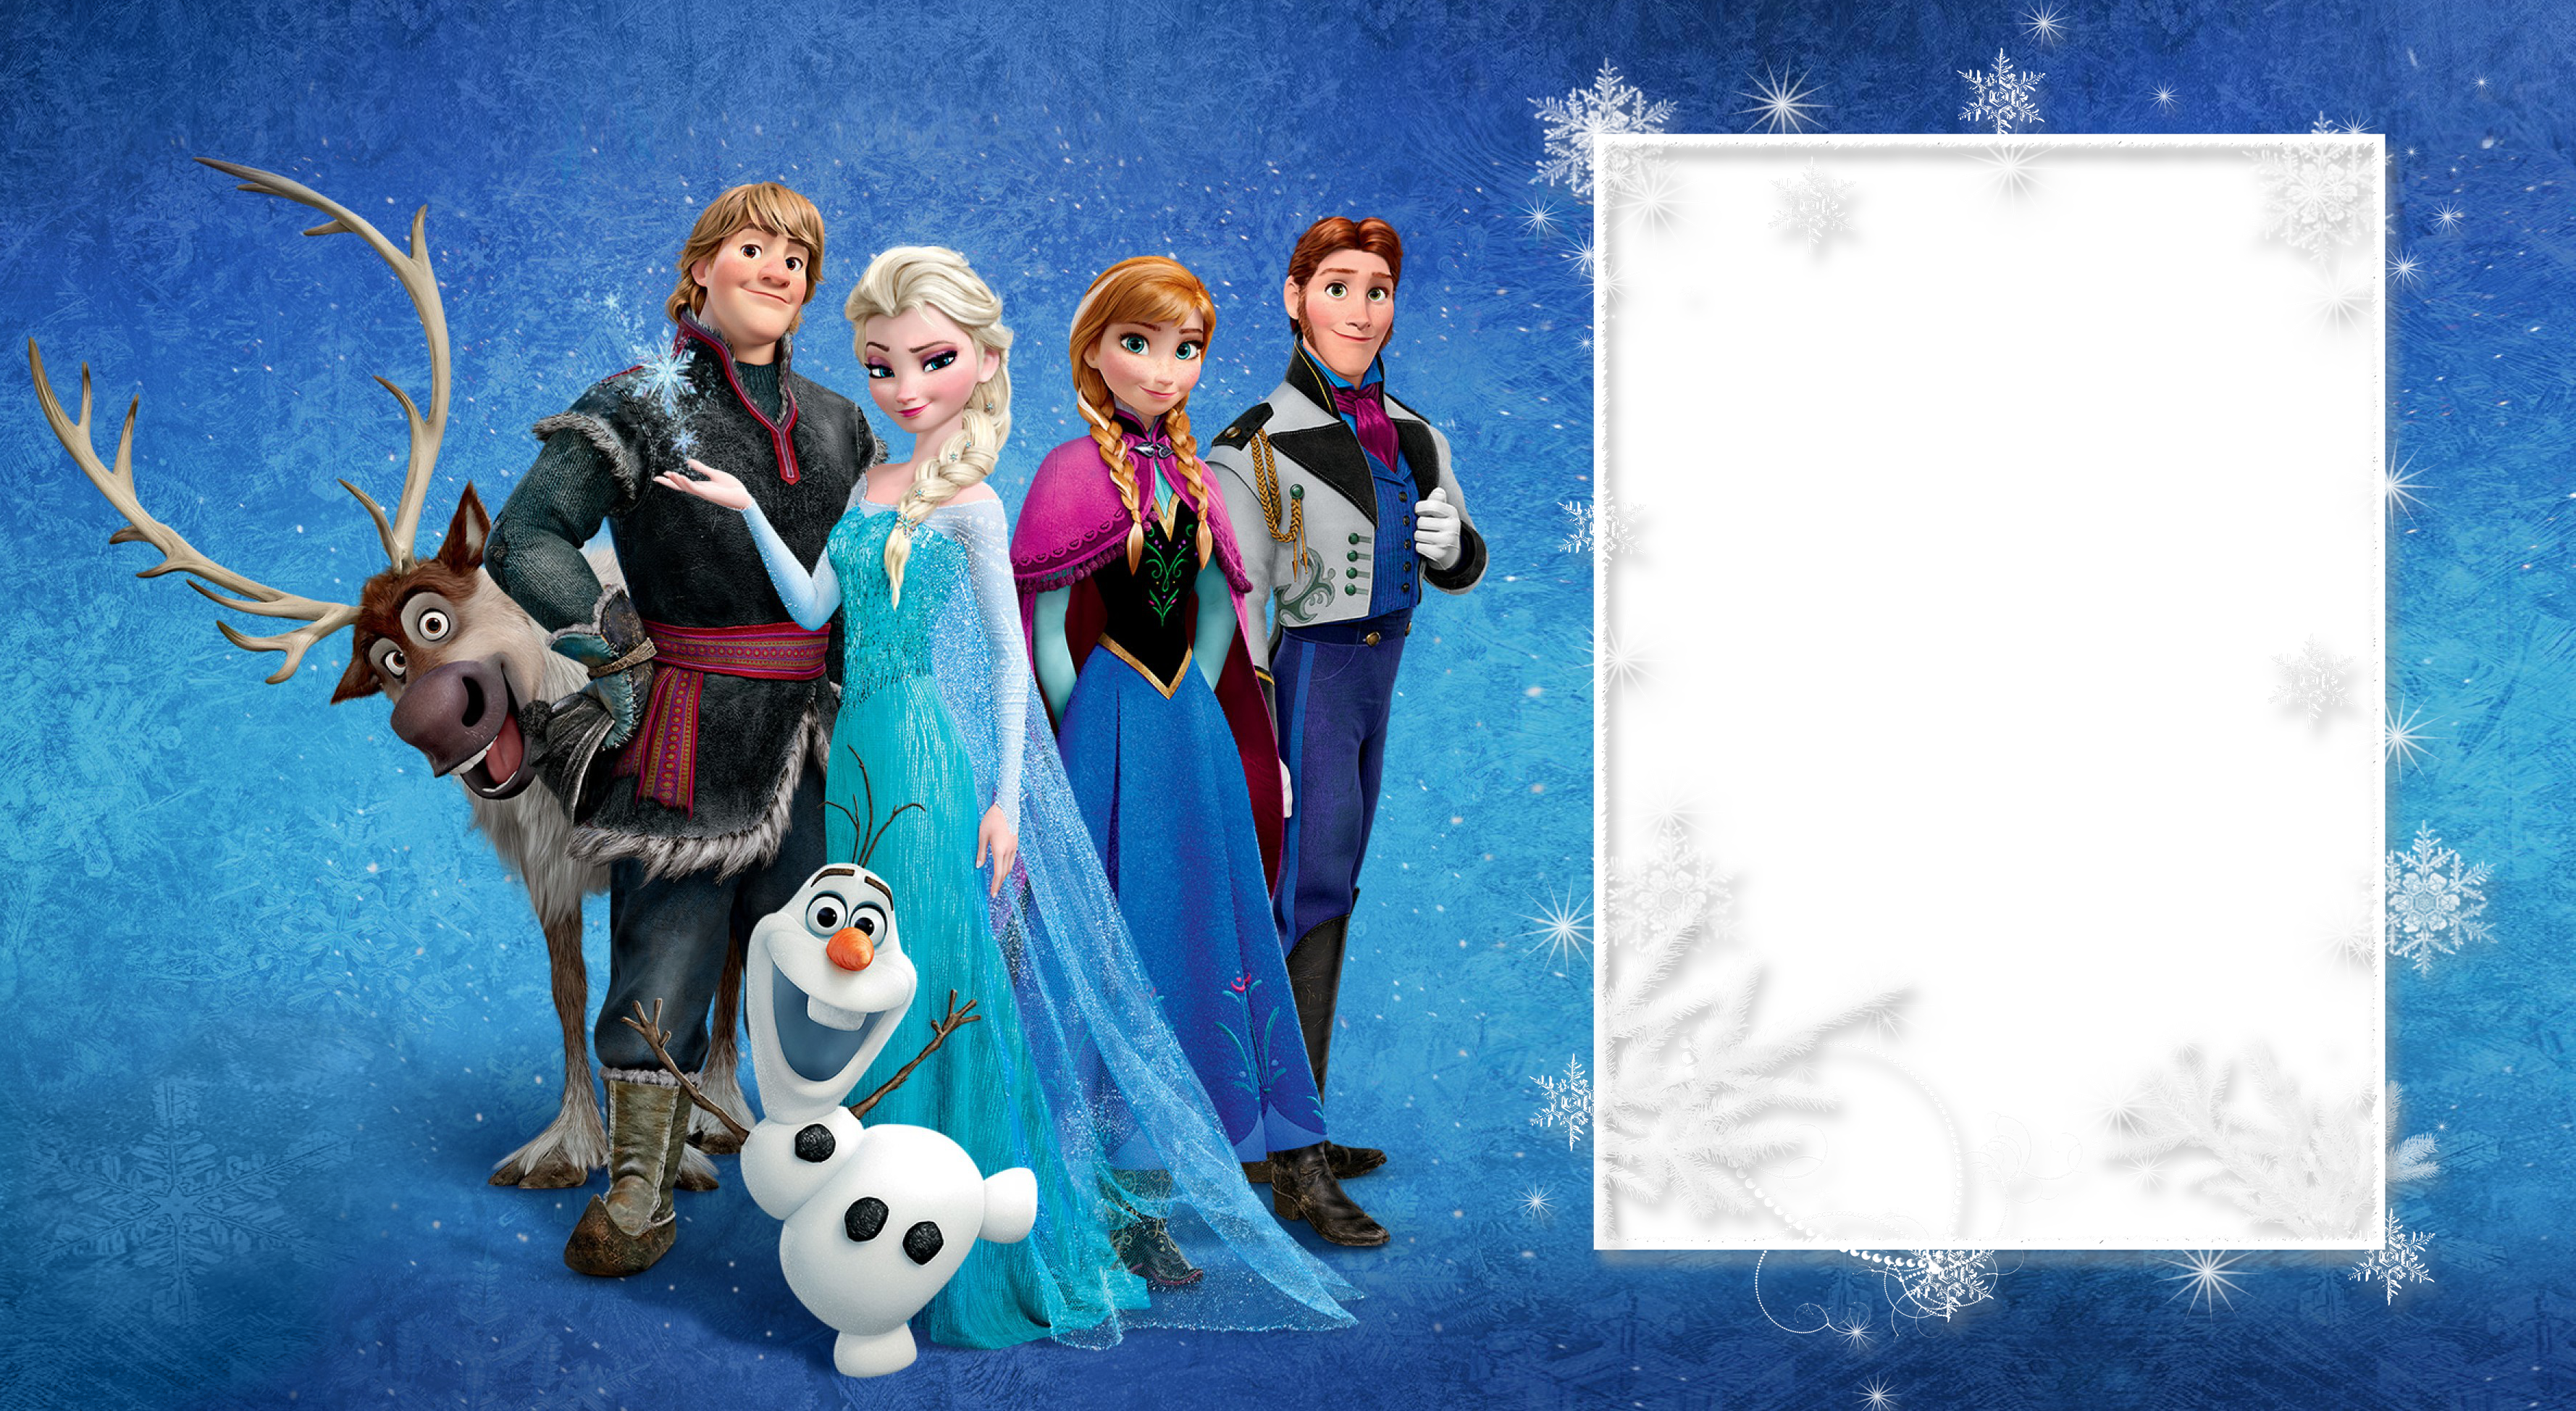 Frozen background png. Large transparent frame gallery